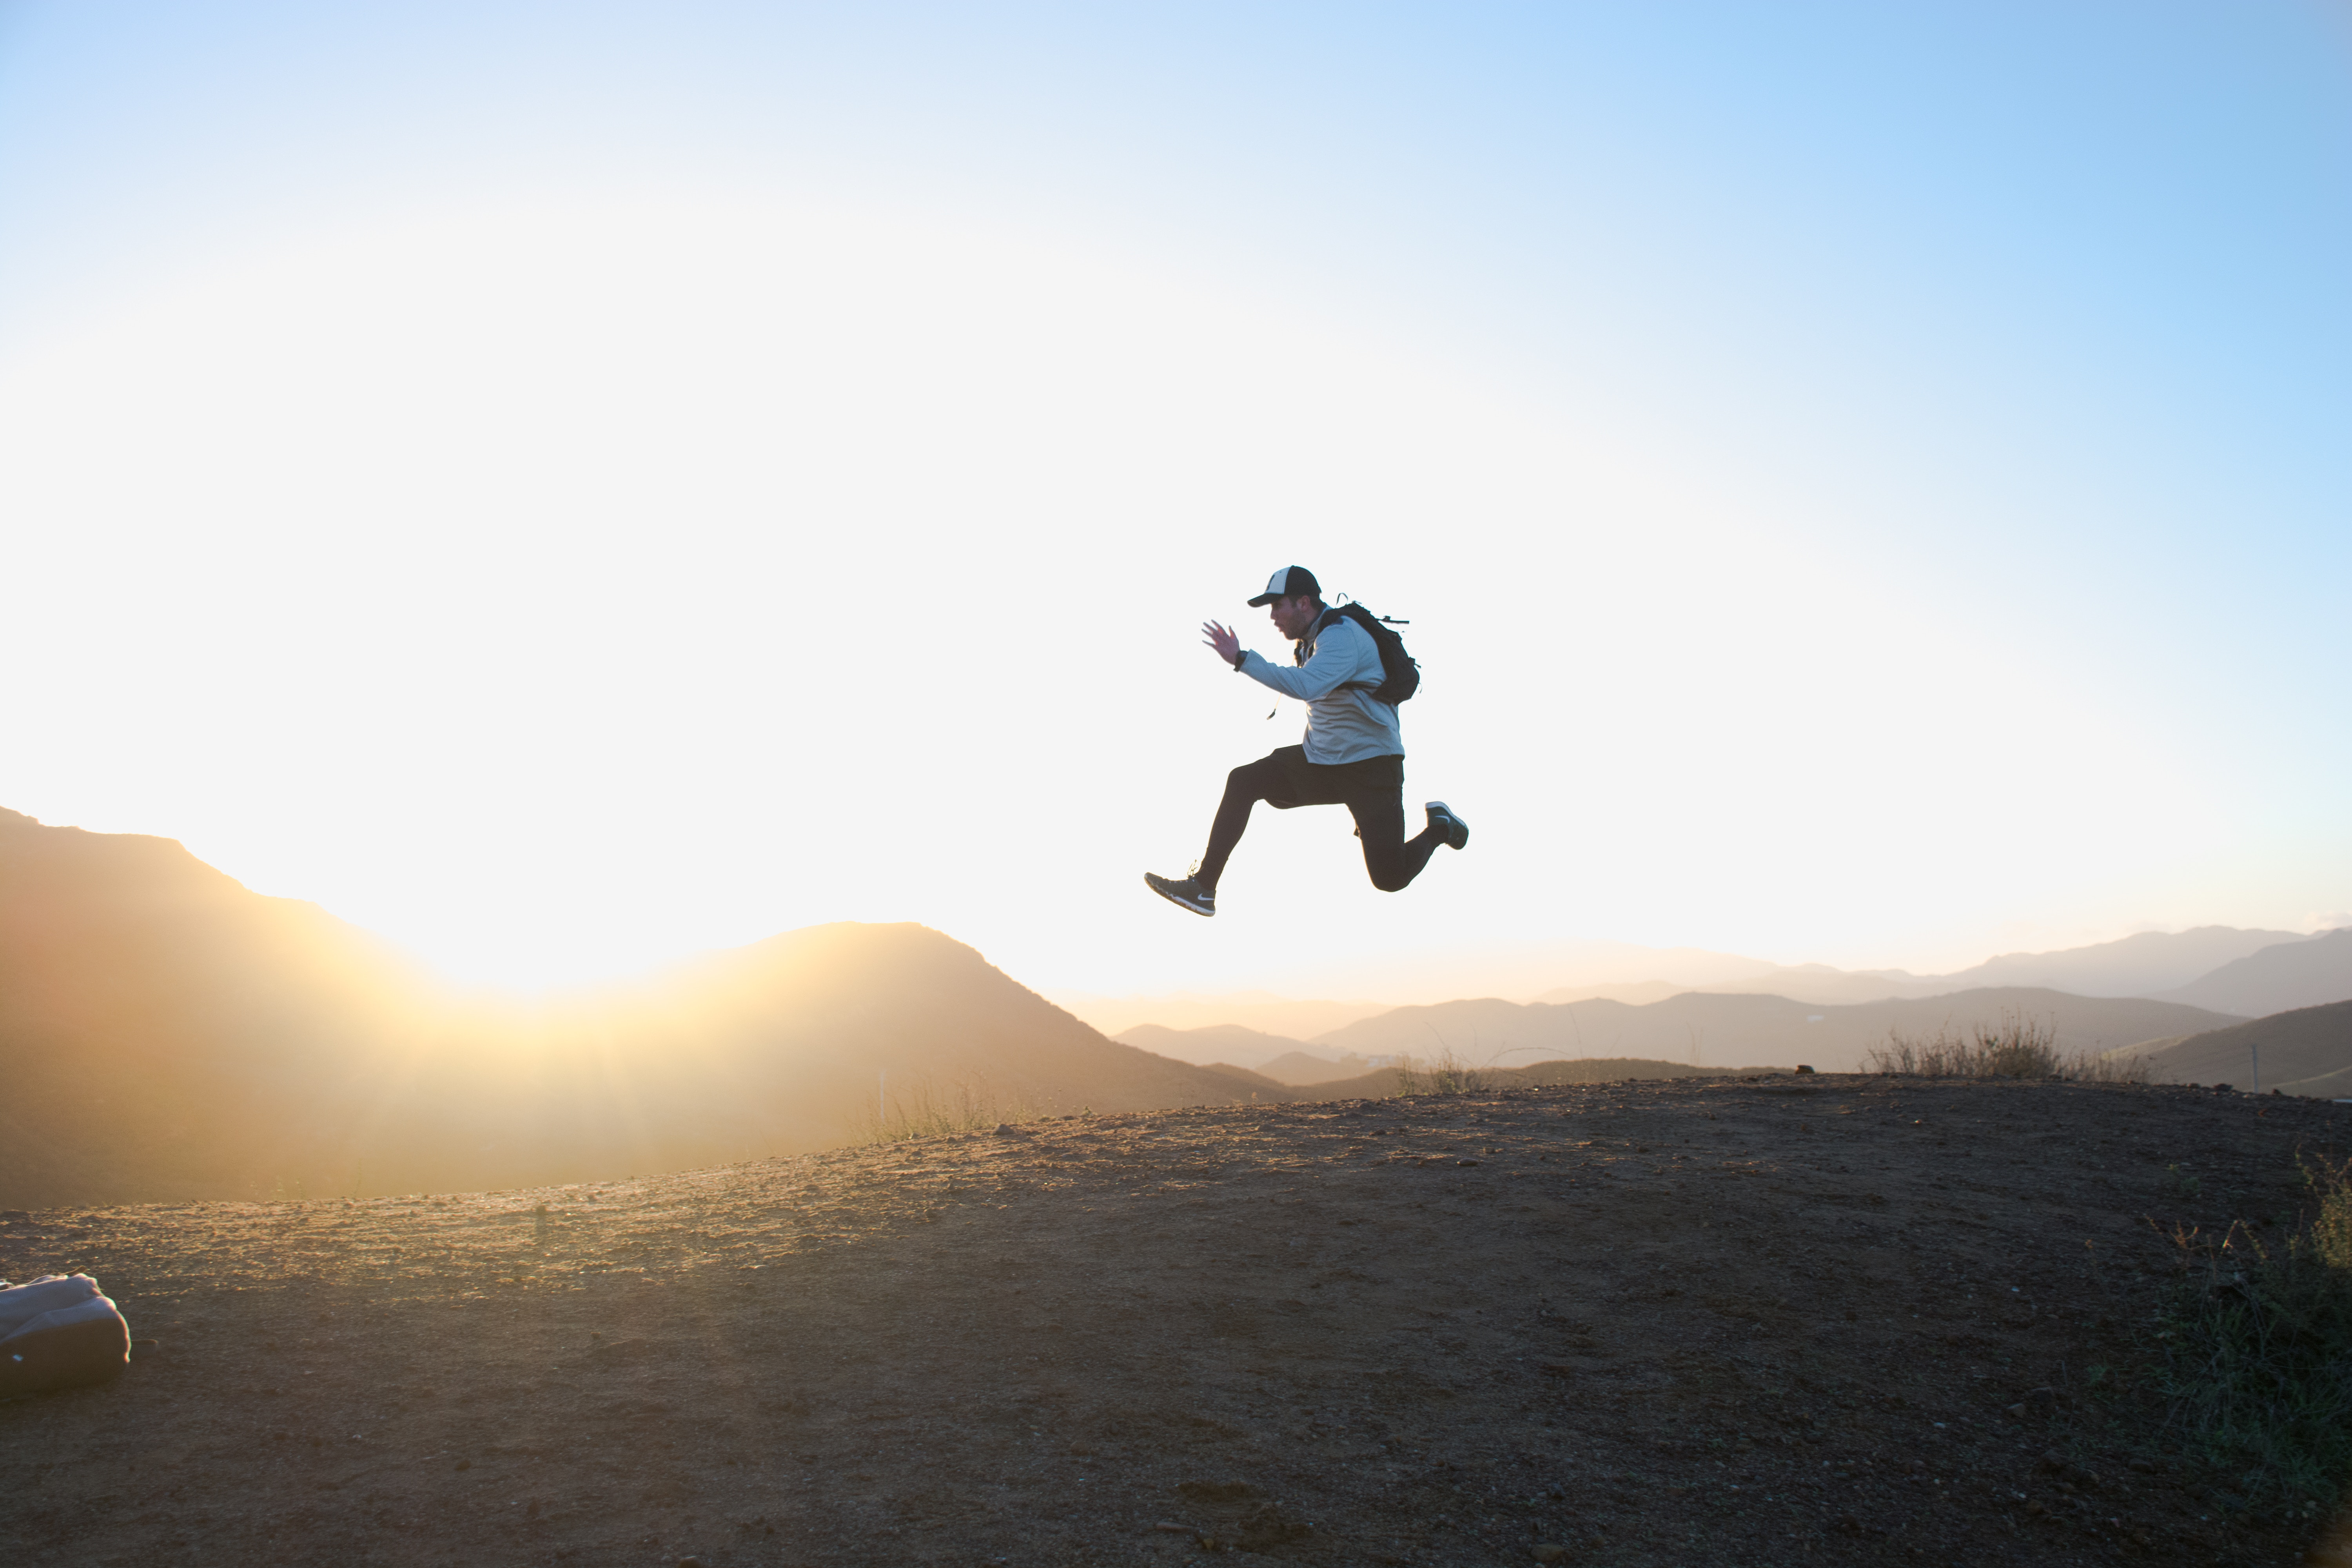 Running, AI Systems Business, Technology, IPsoft, User Experience, Cognitive, Machine Learning, IT